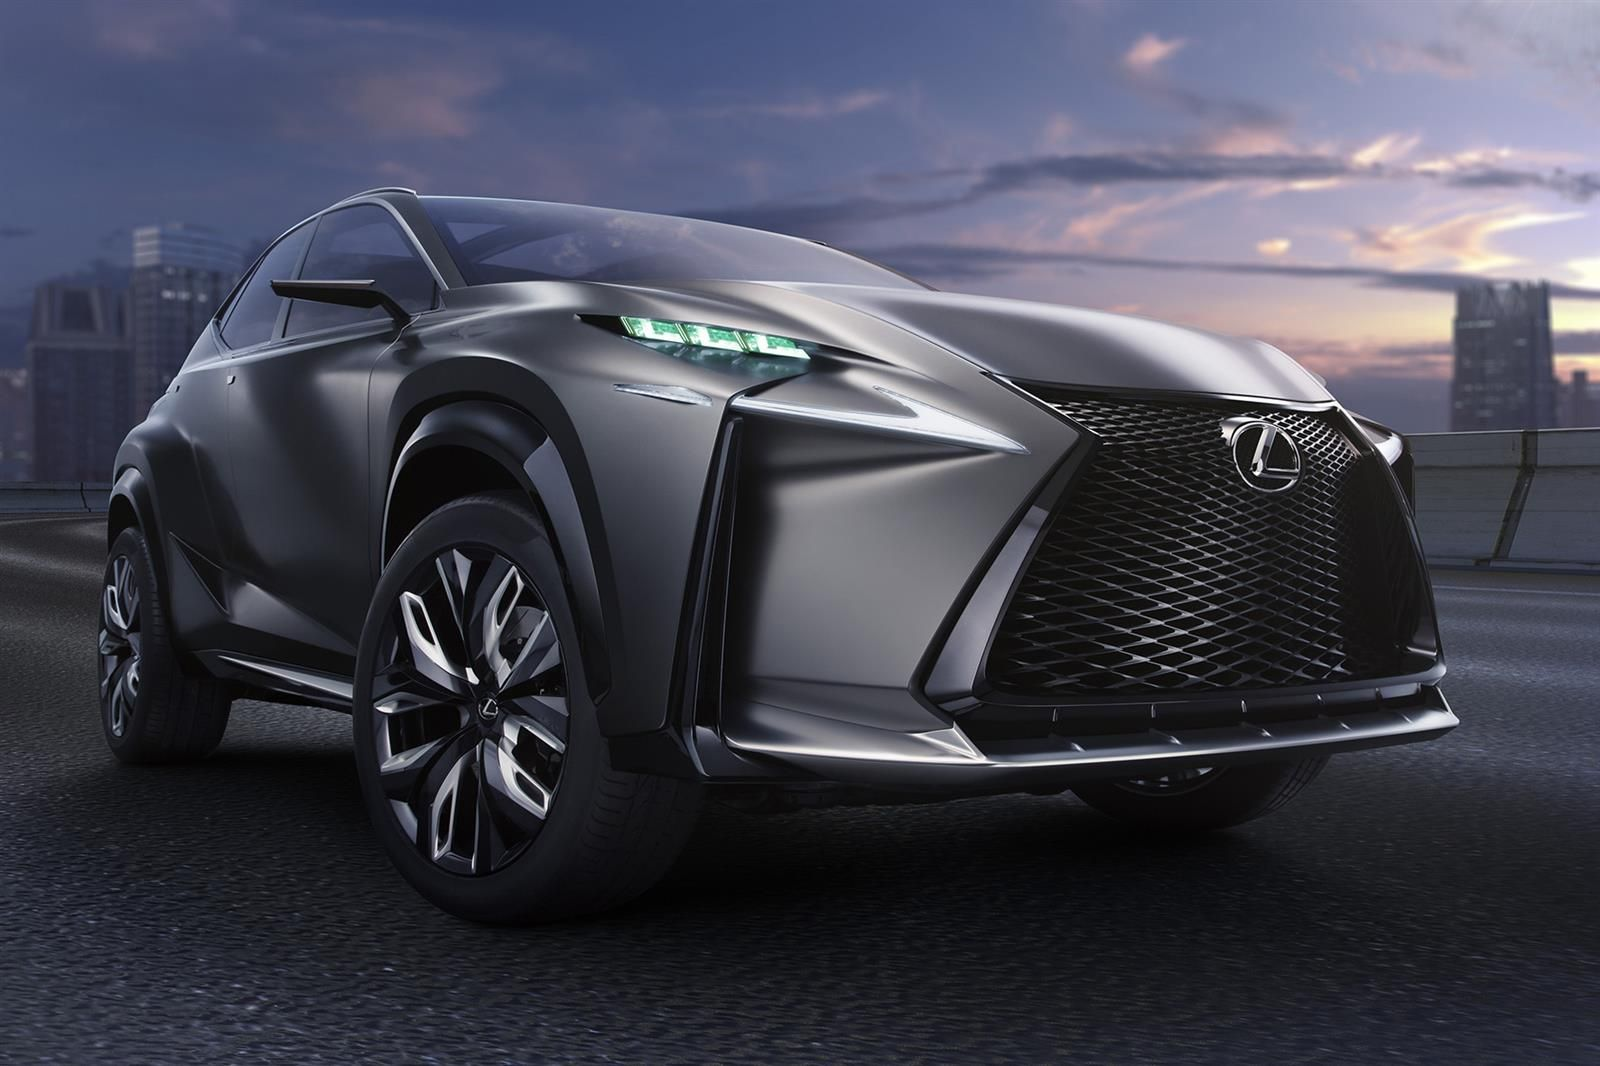 2019 Lexus LF NX Concept photo - 4